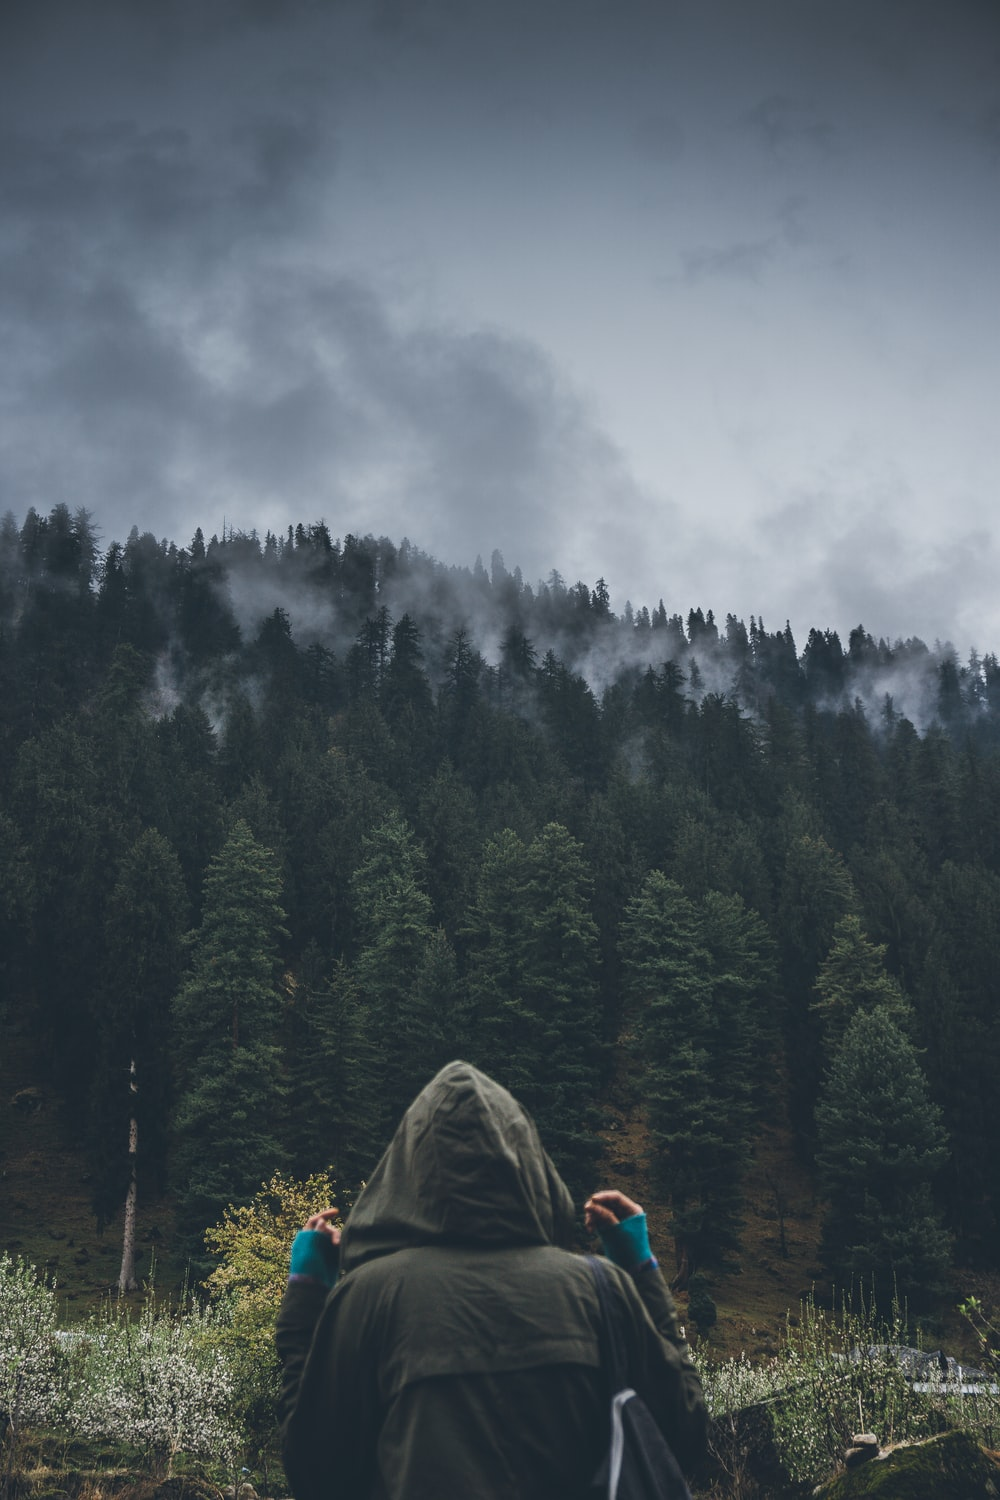 person facing trees under gray clouds